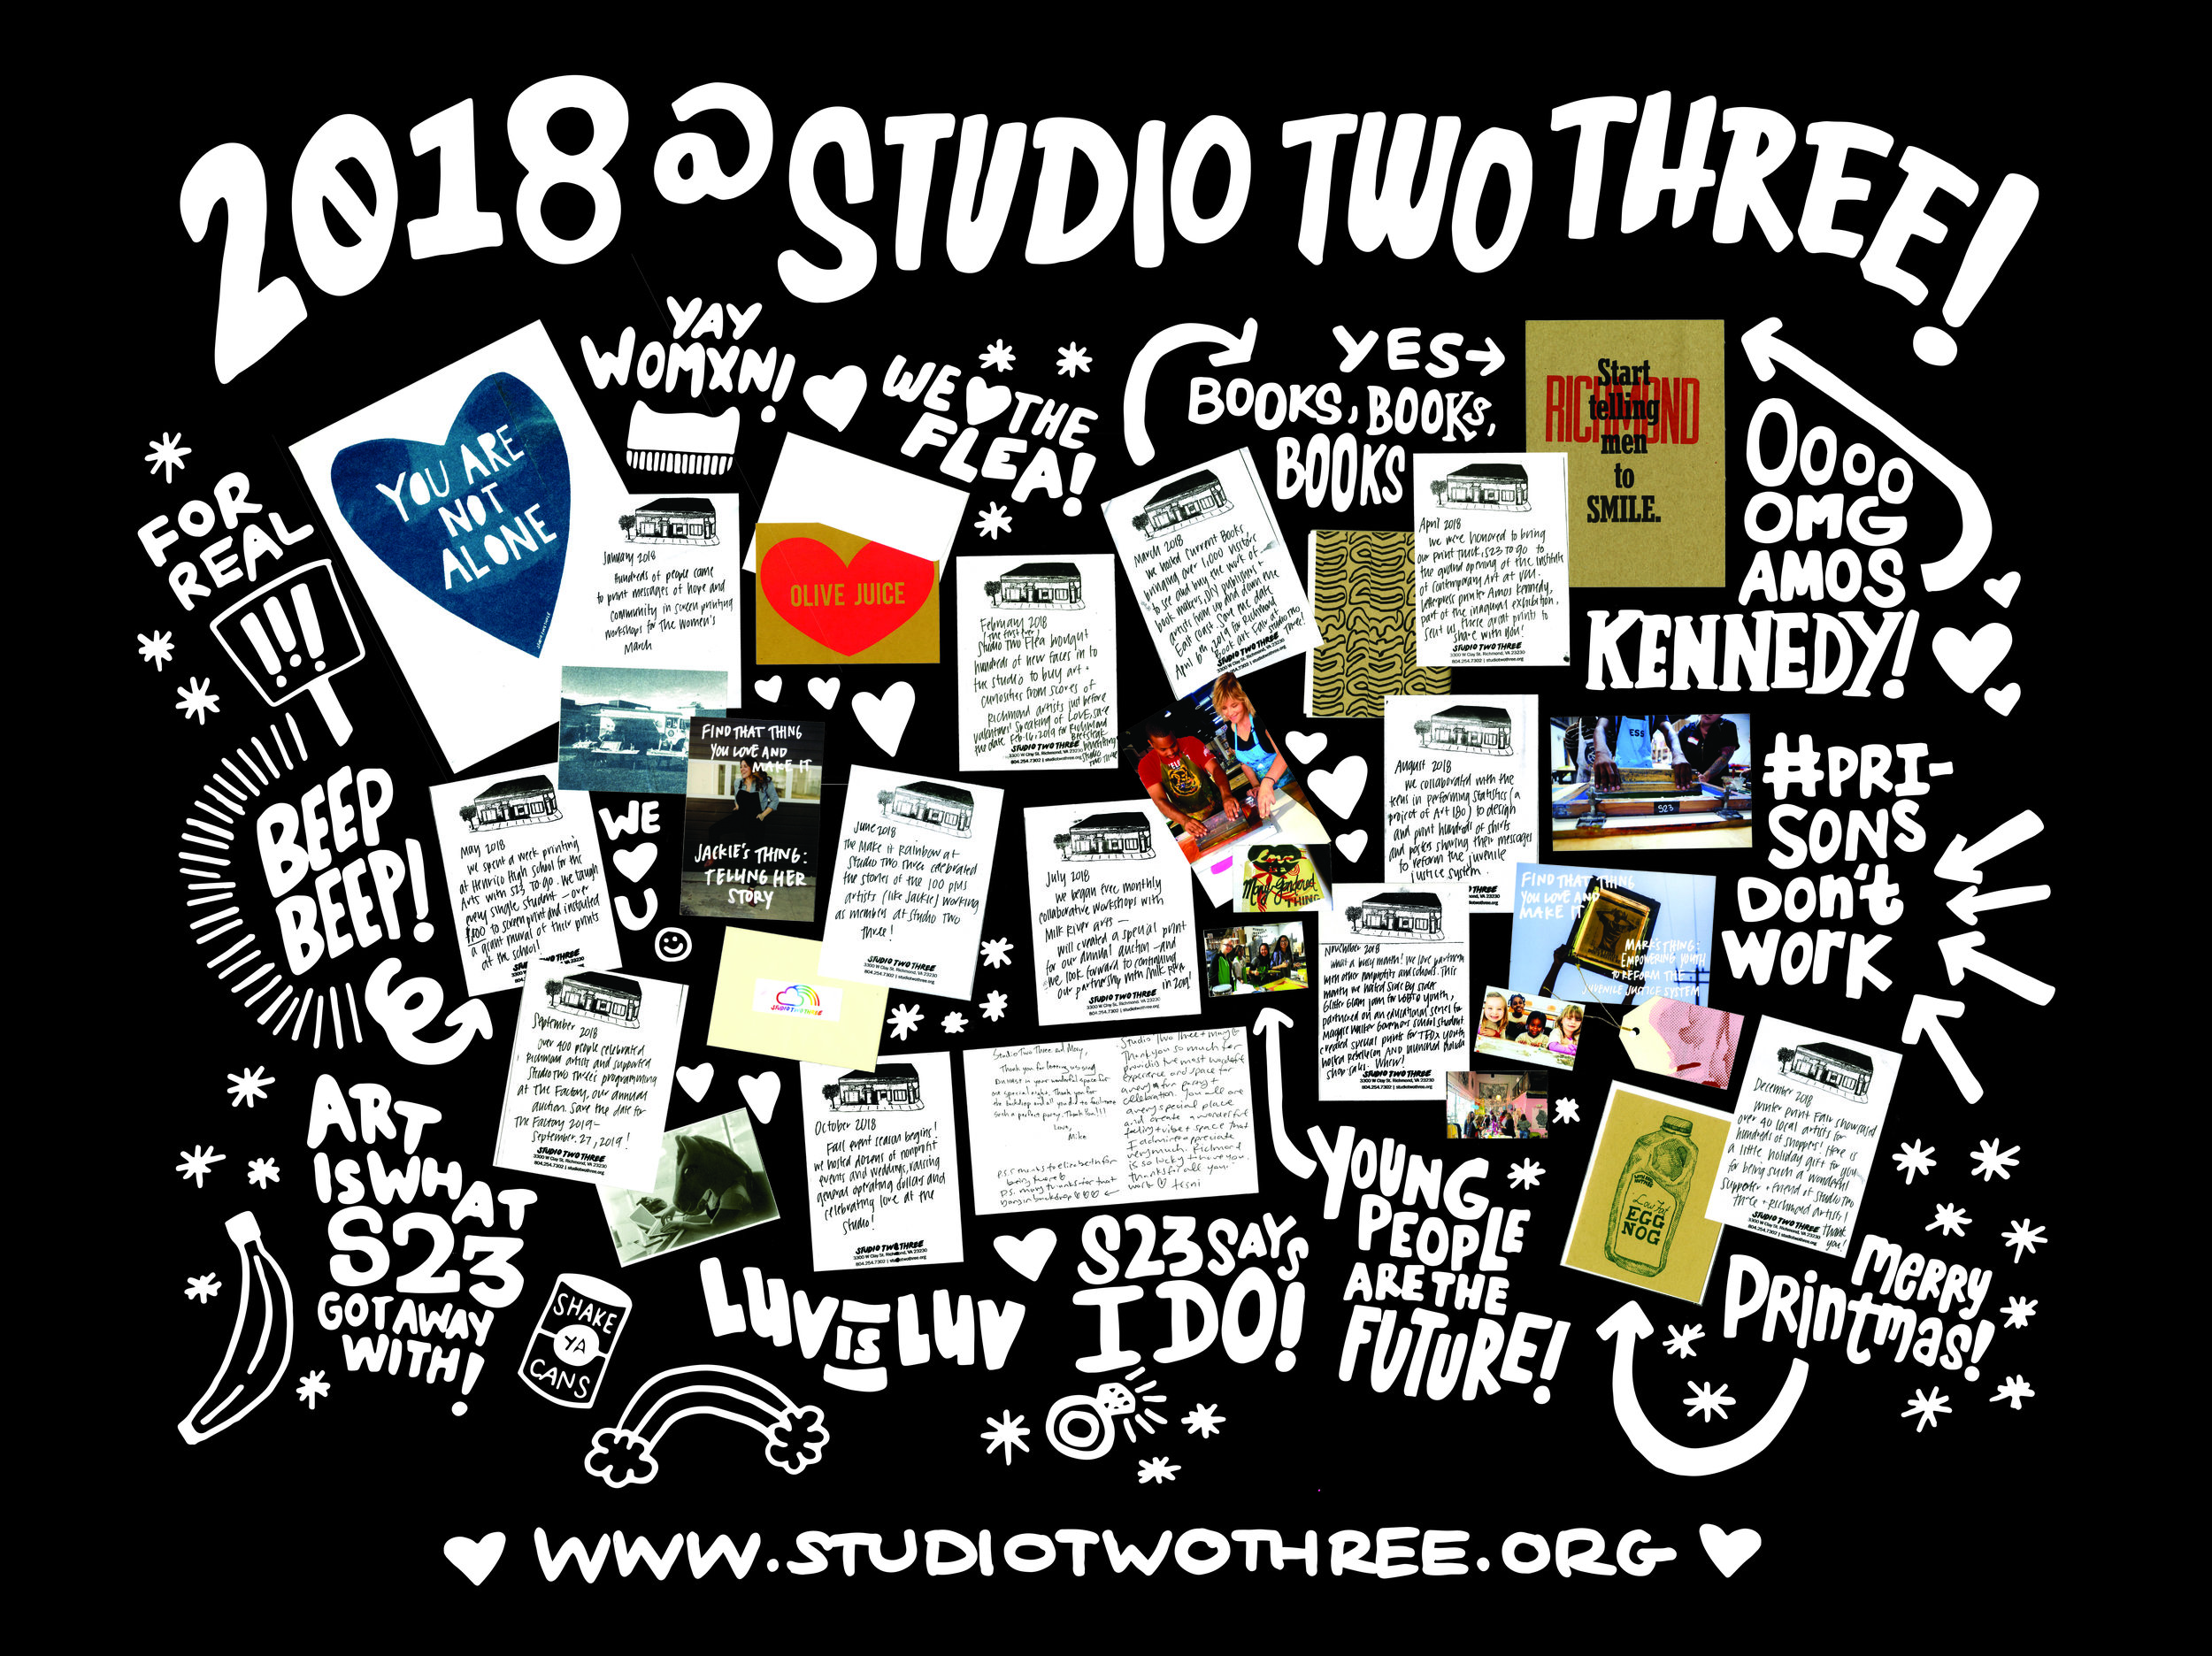 Studio Two Three | nonprofit | Richmond Virginia | Annual Report